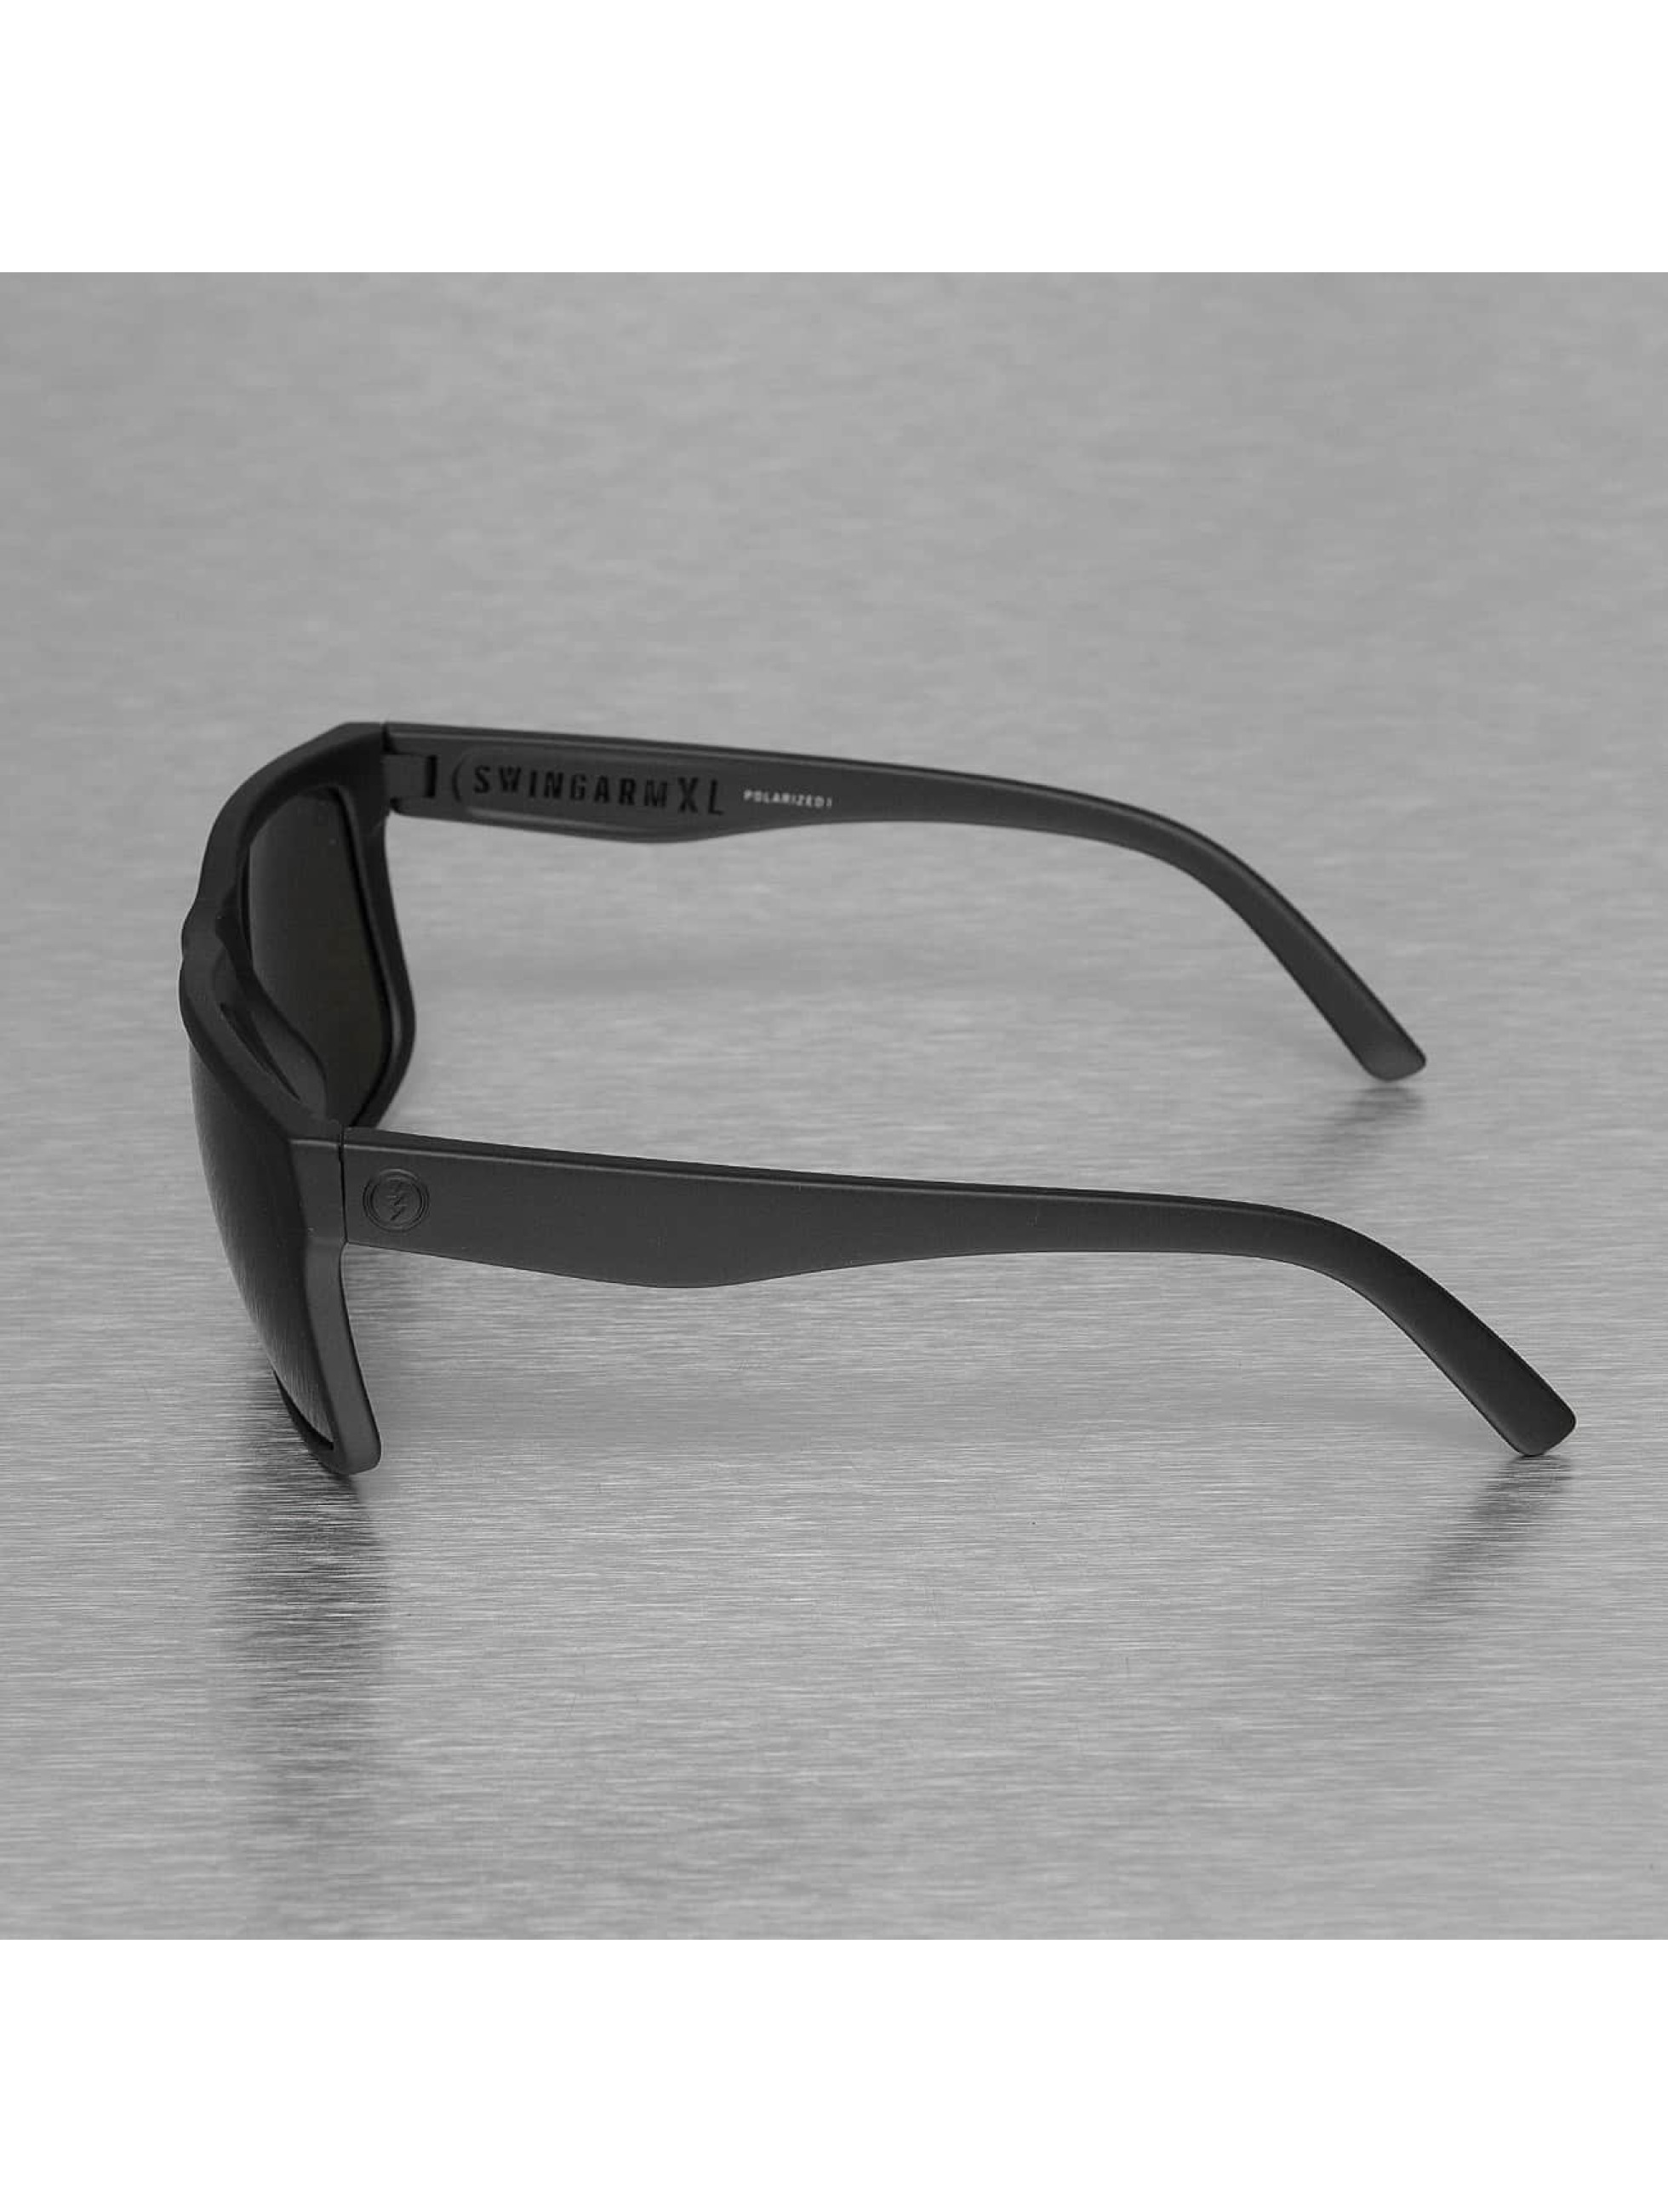 Electric Sunglasses SWINGARM XL Polarized black